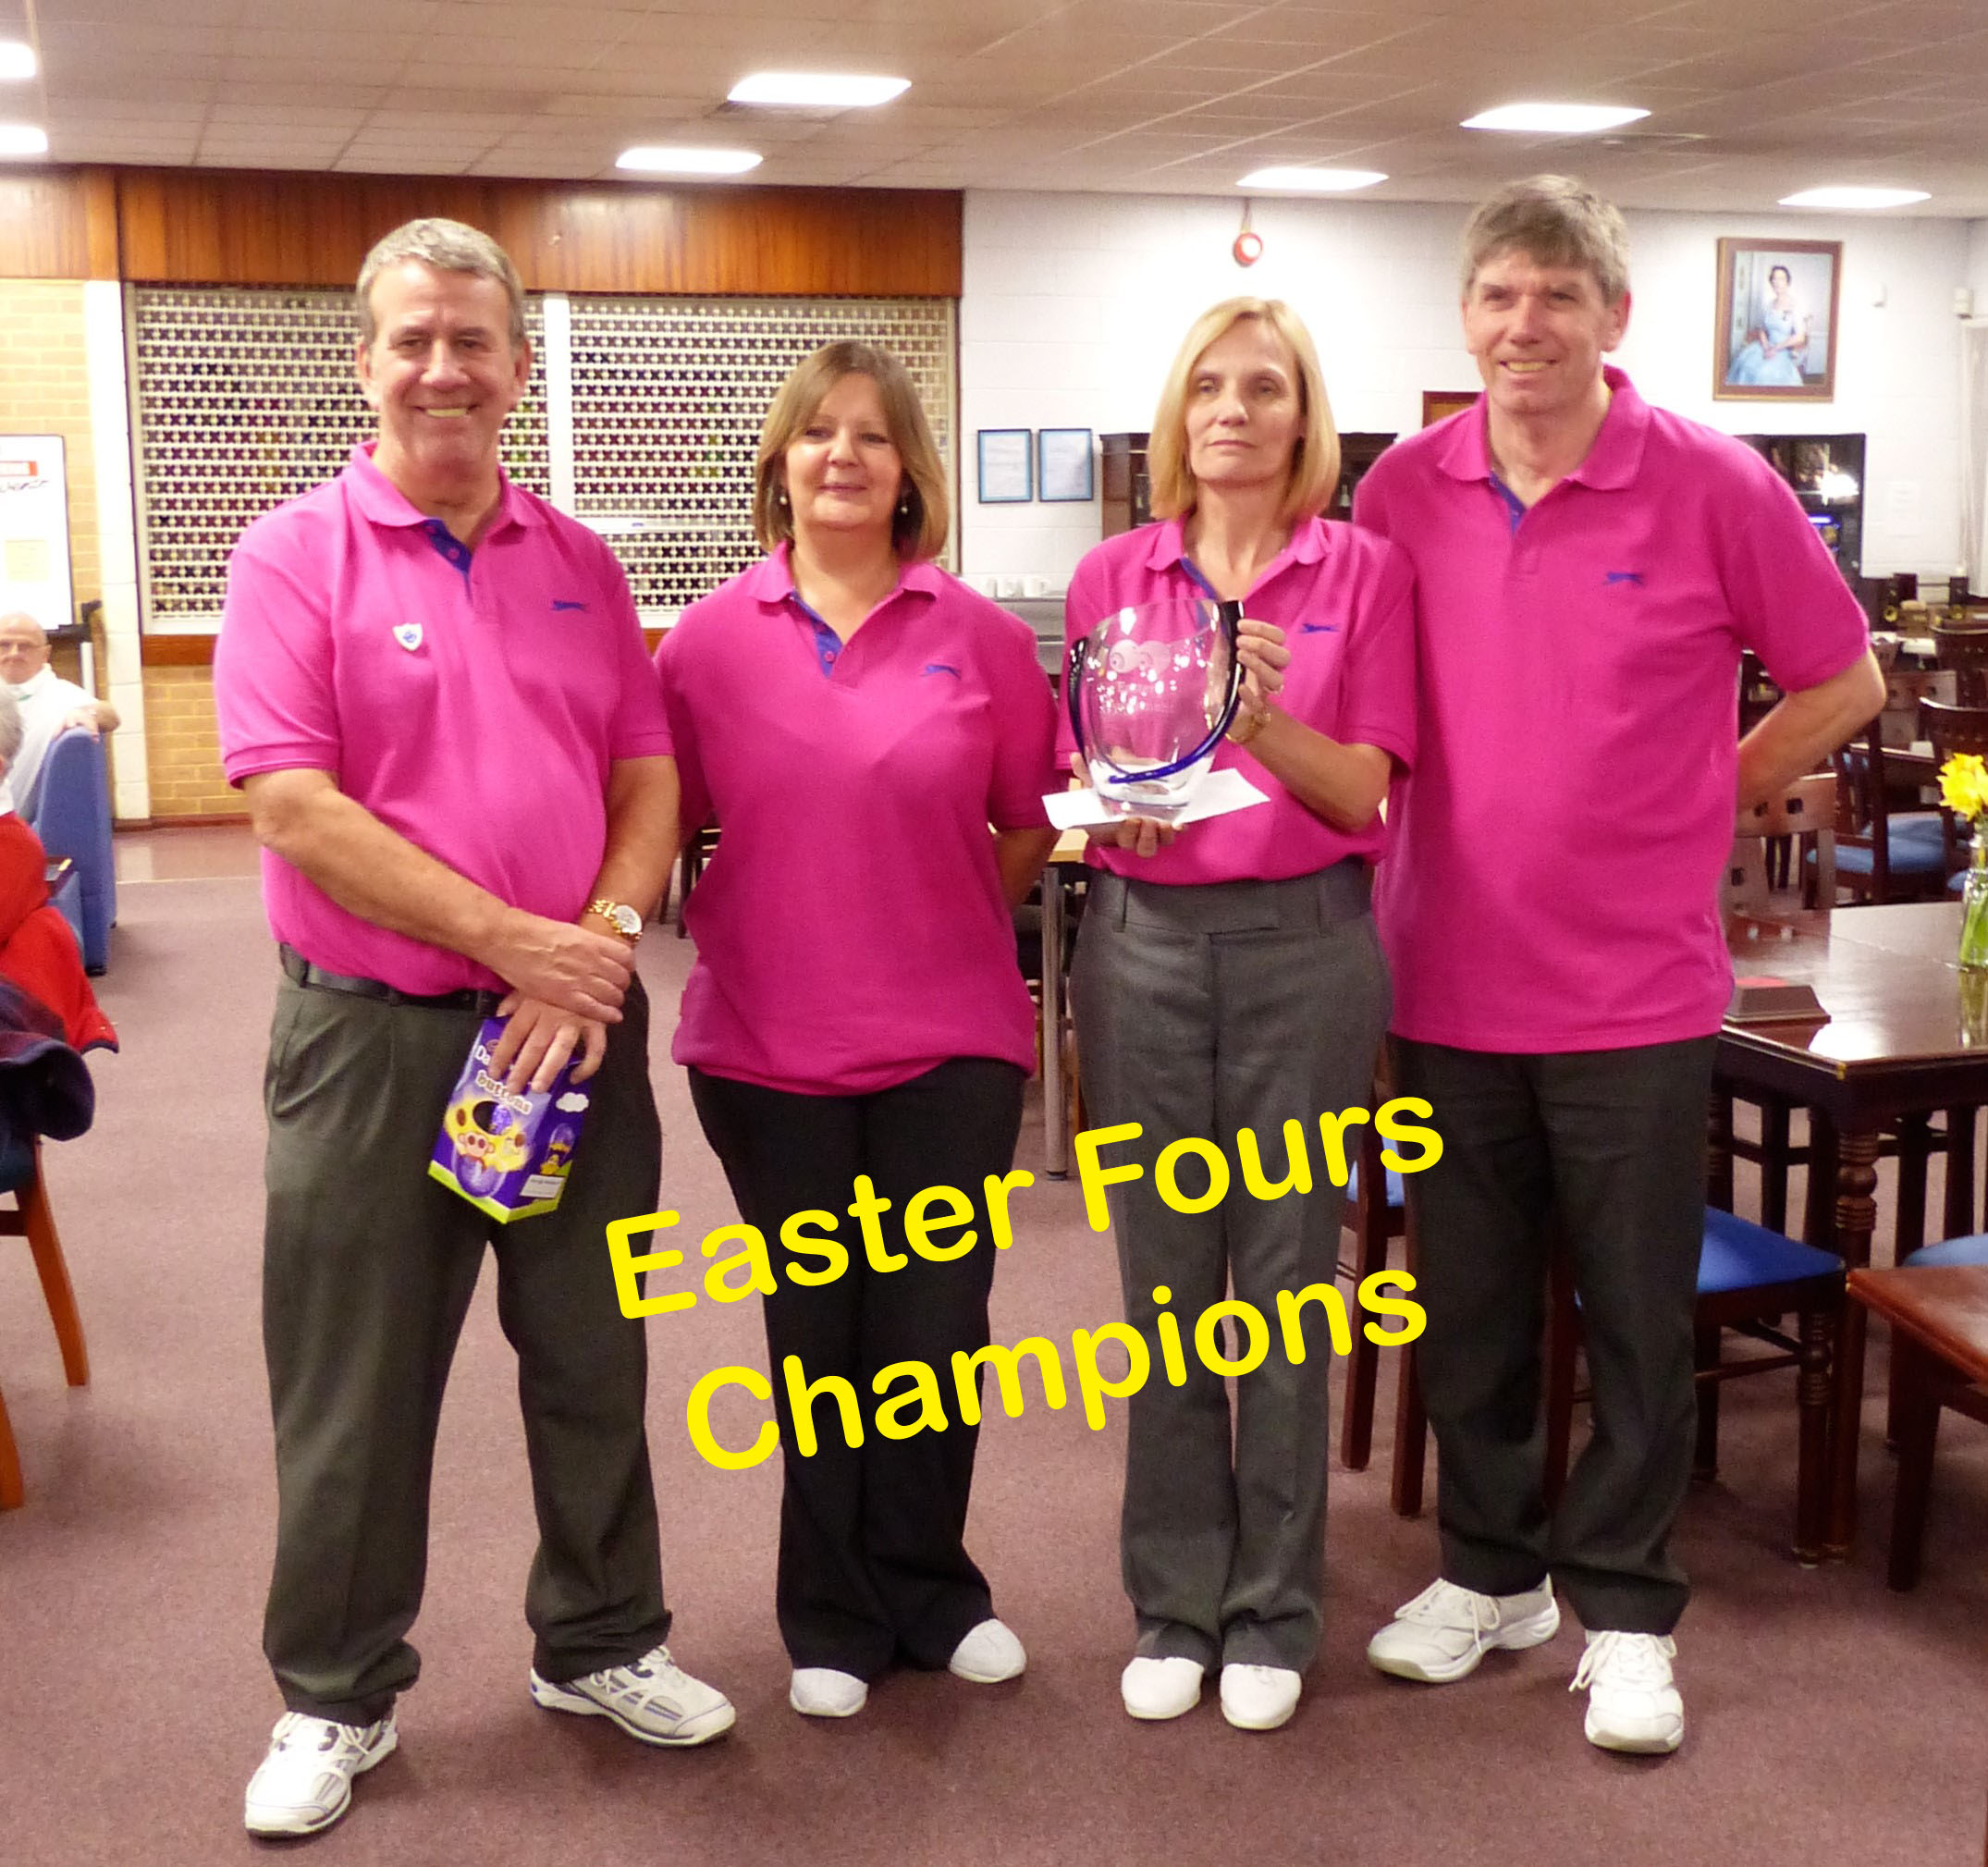 2016-03-25 Easter Fours Winners - Sarah Utton Karen Cranham Nevill Utton Chris Cranham - captioned